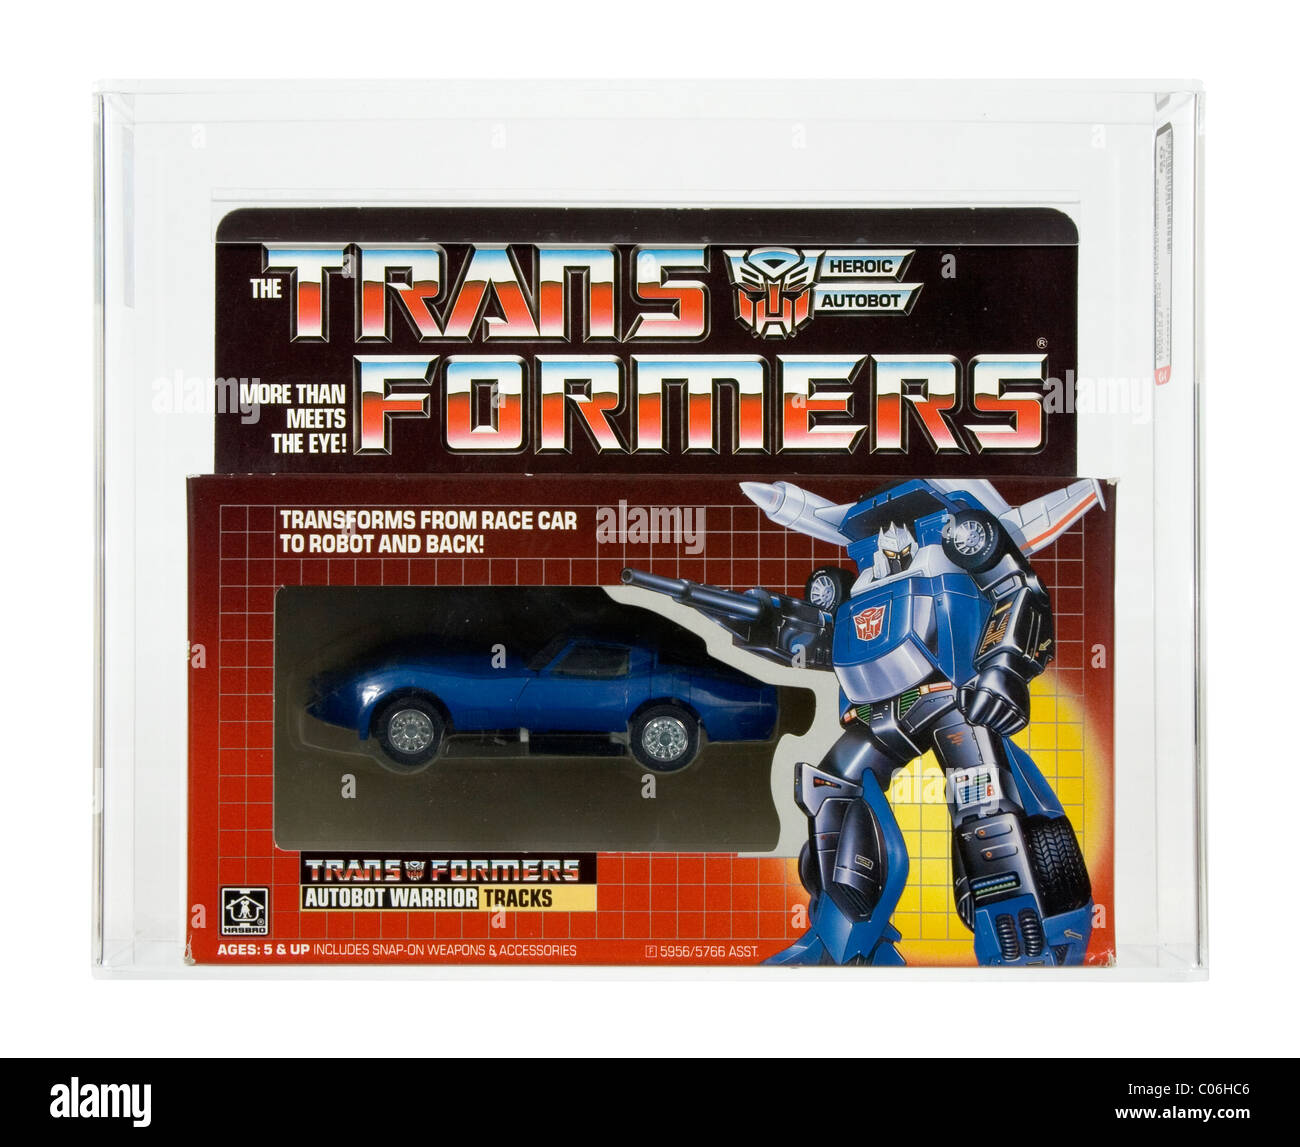 1985 Hasbro Transformers Series 2 car Autobot warrior Tracks AFA 80 NM (Near Mint) - Stock Image